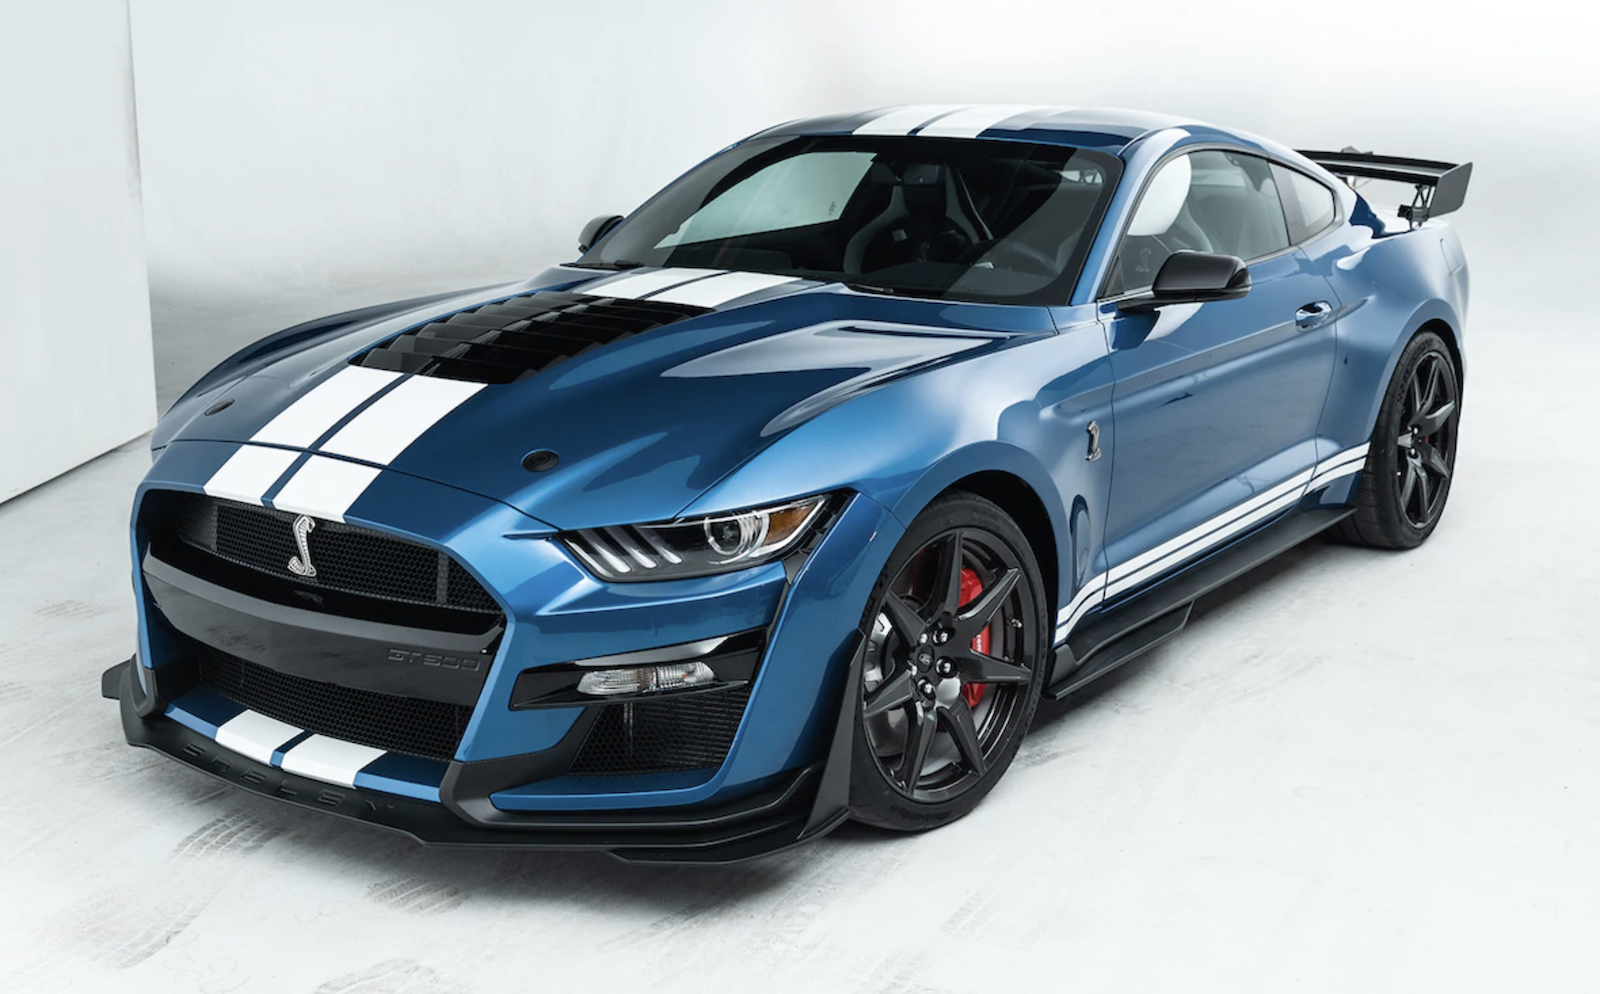 The New 2020 Ford Mustang Shelby GT500